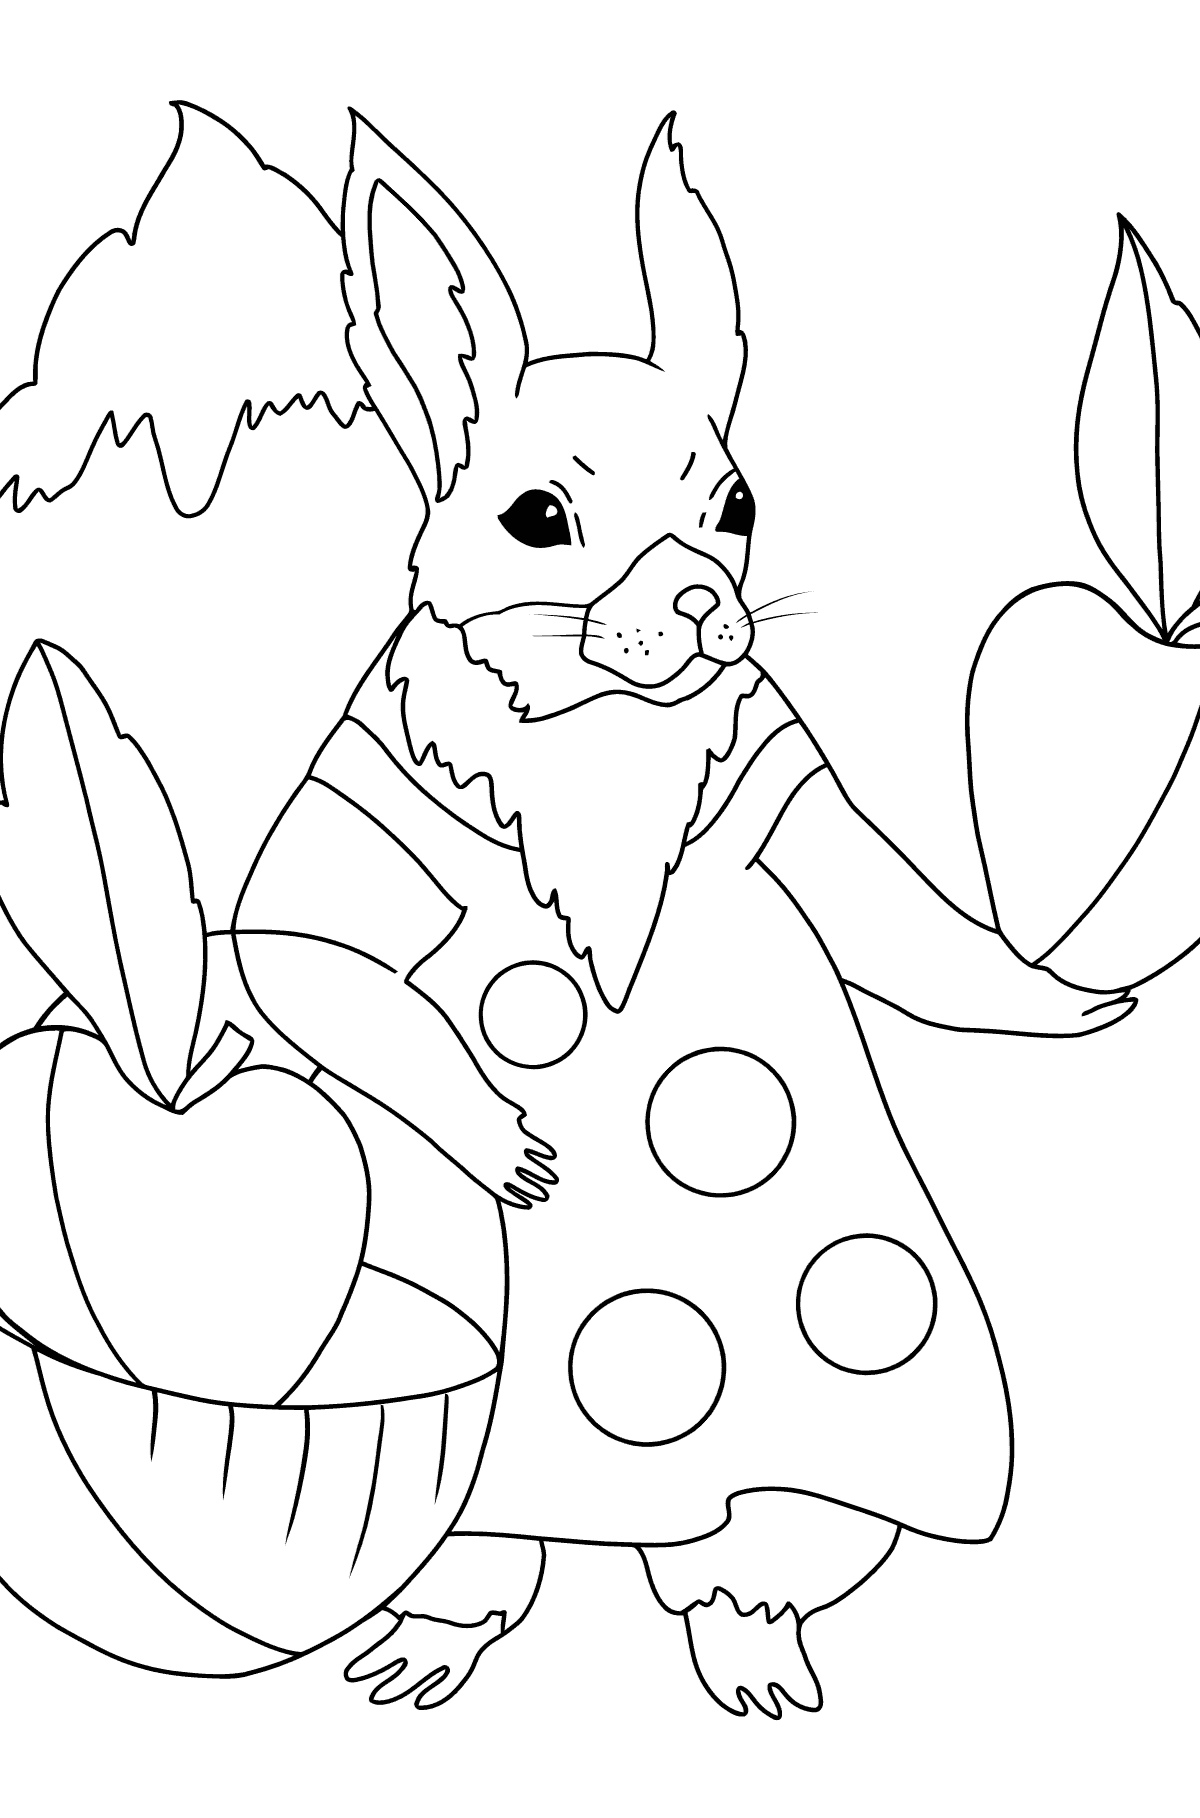 Summer Coloring Page - Squirrels have Collected Apples for Winter for Kids